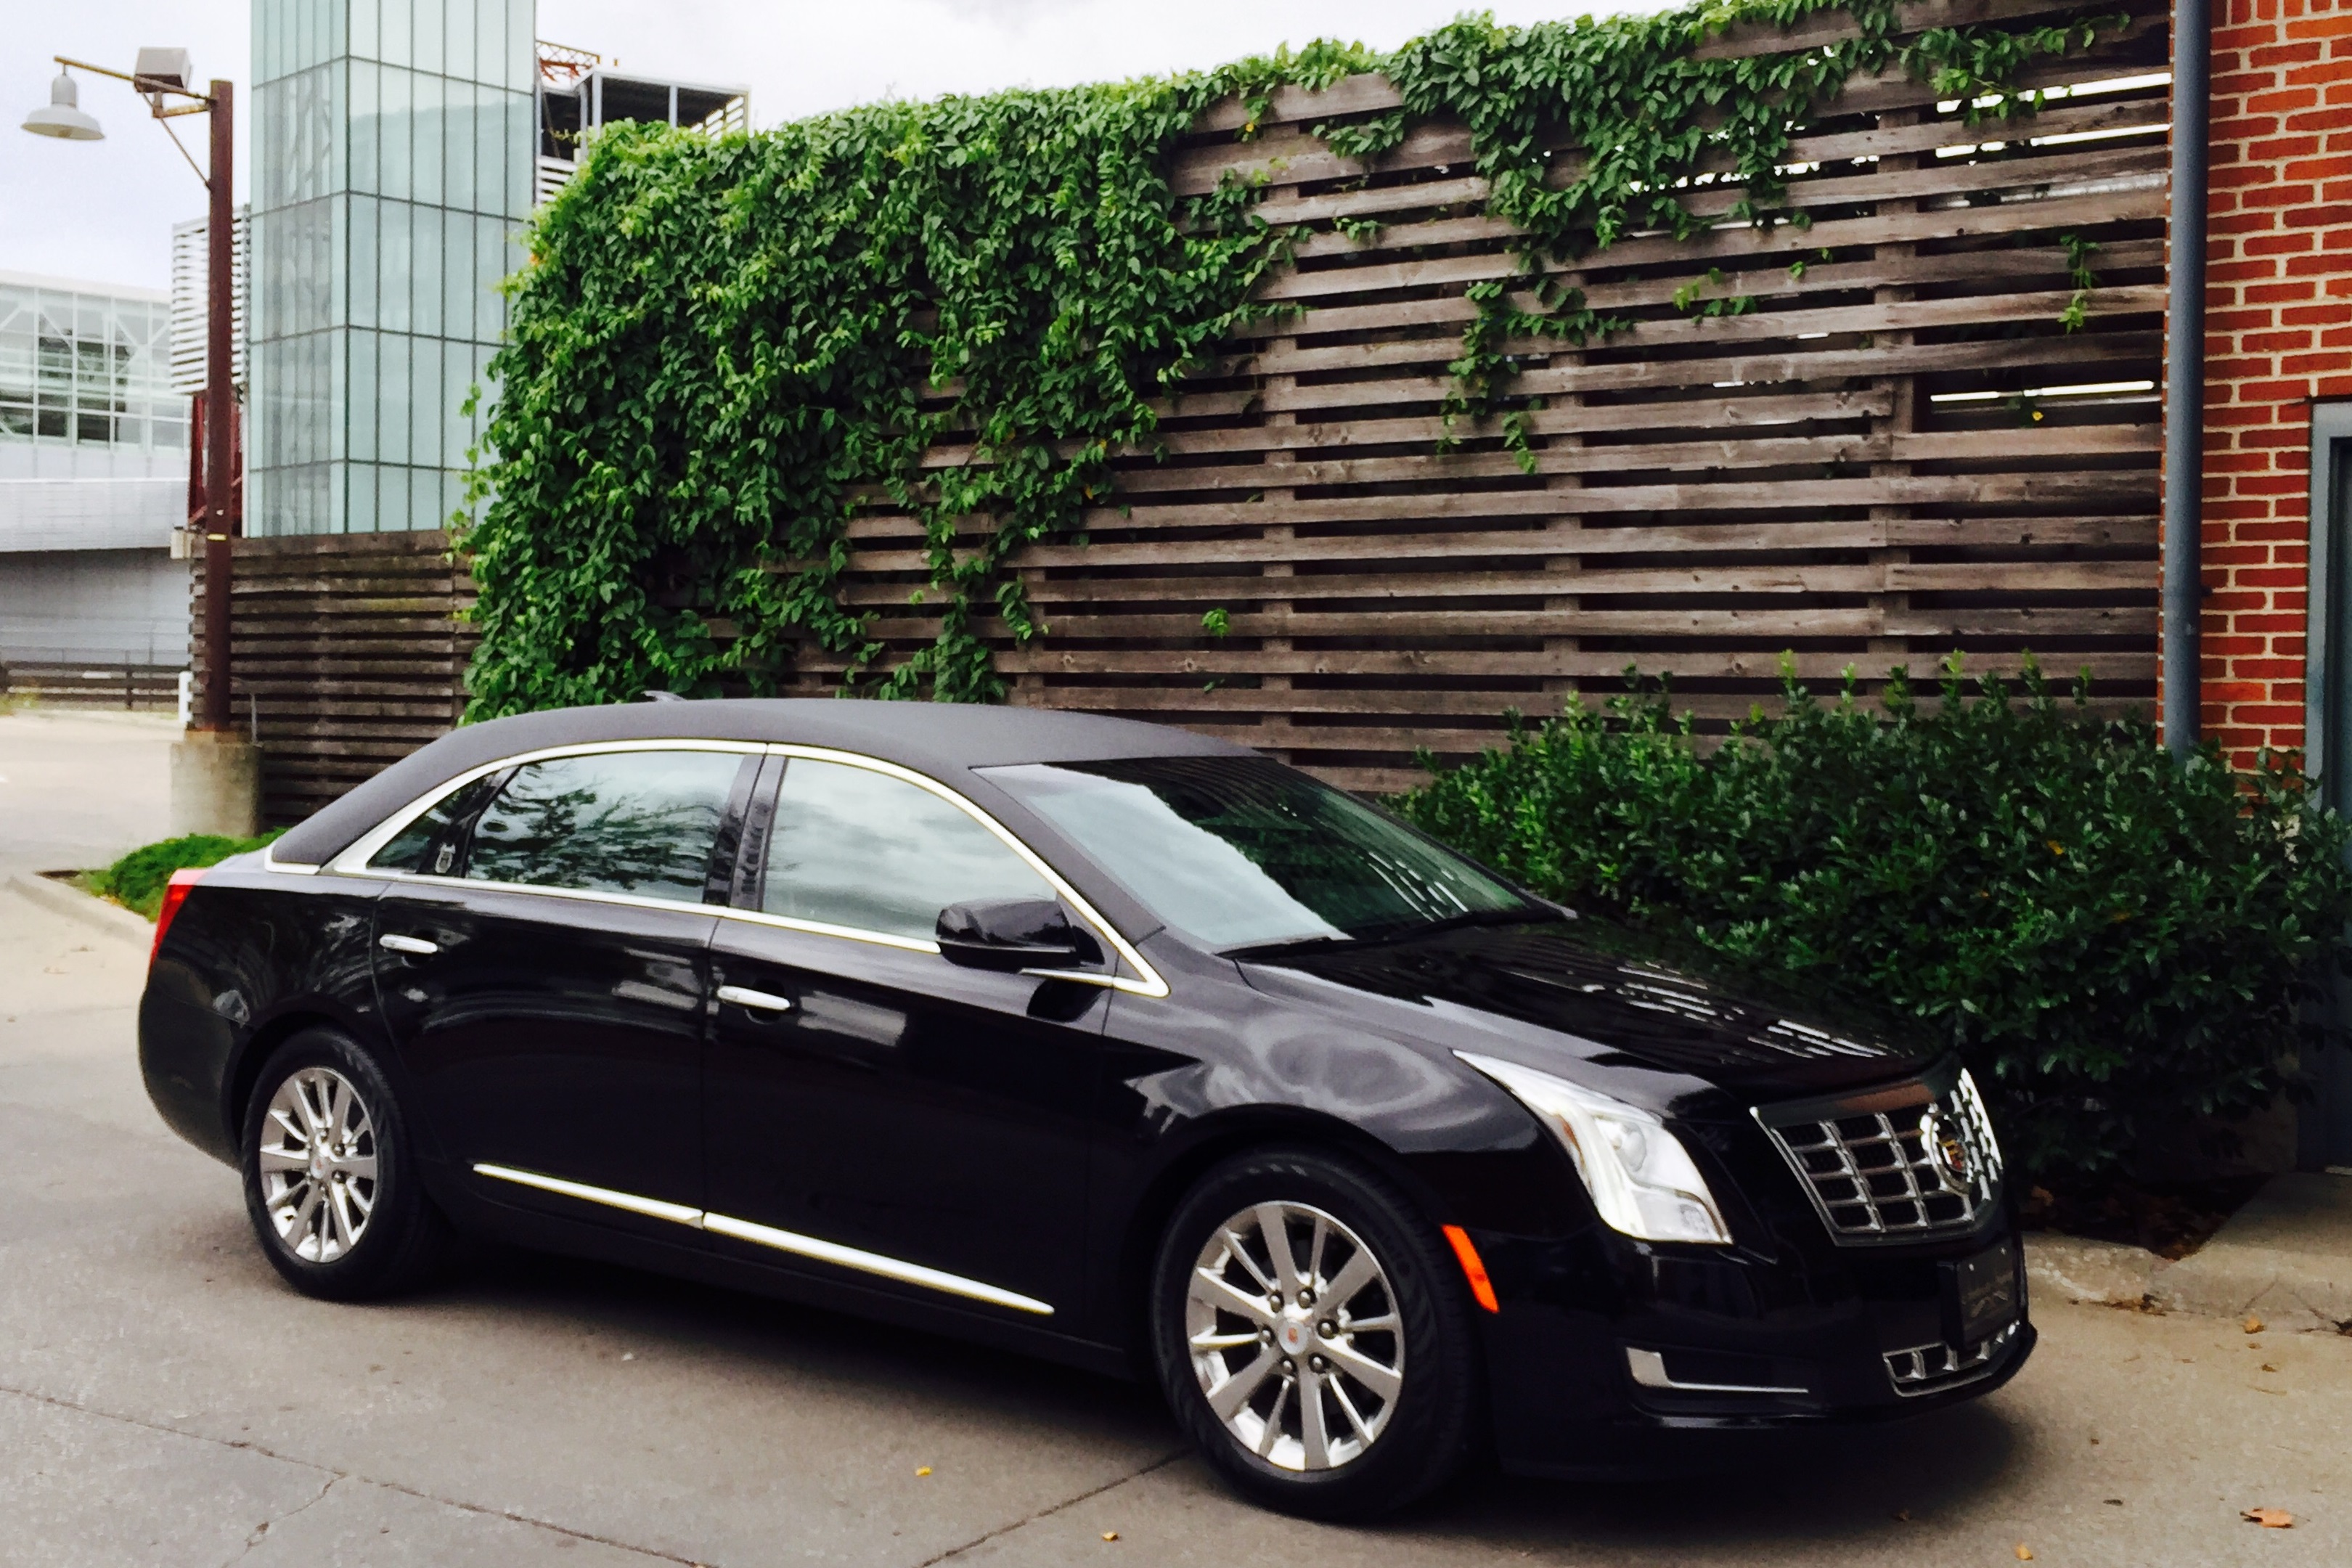 en sale xts mar club offers pages content us media for news xtsgolf country credibility cadillac vehicles detail